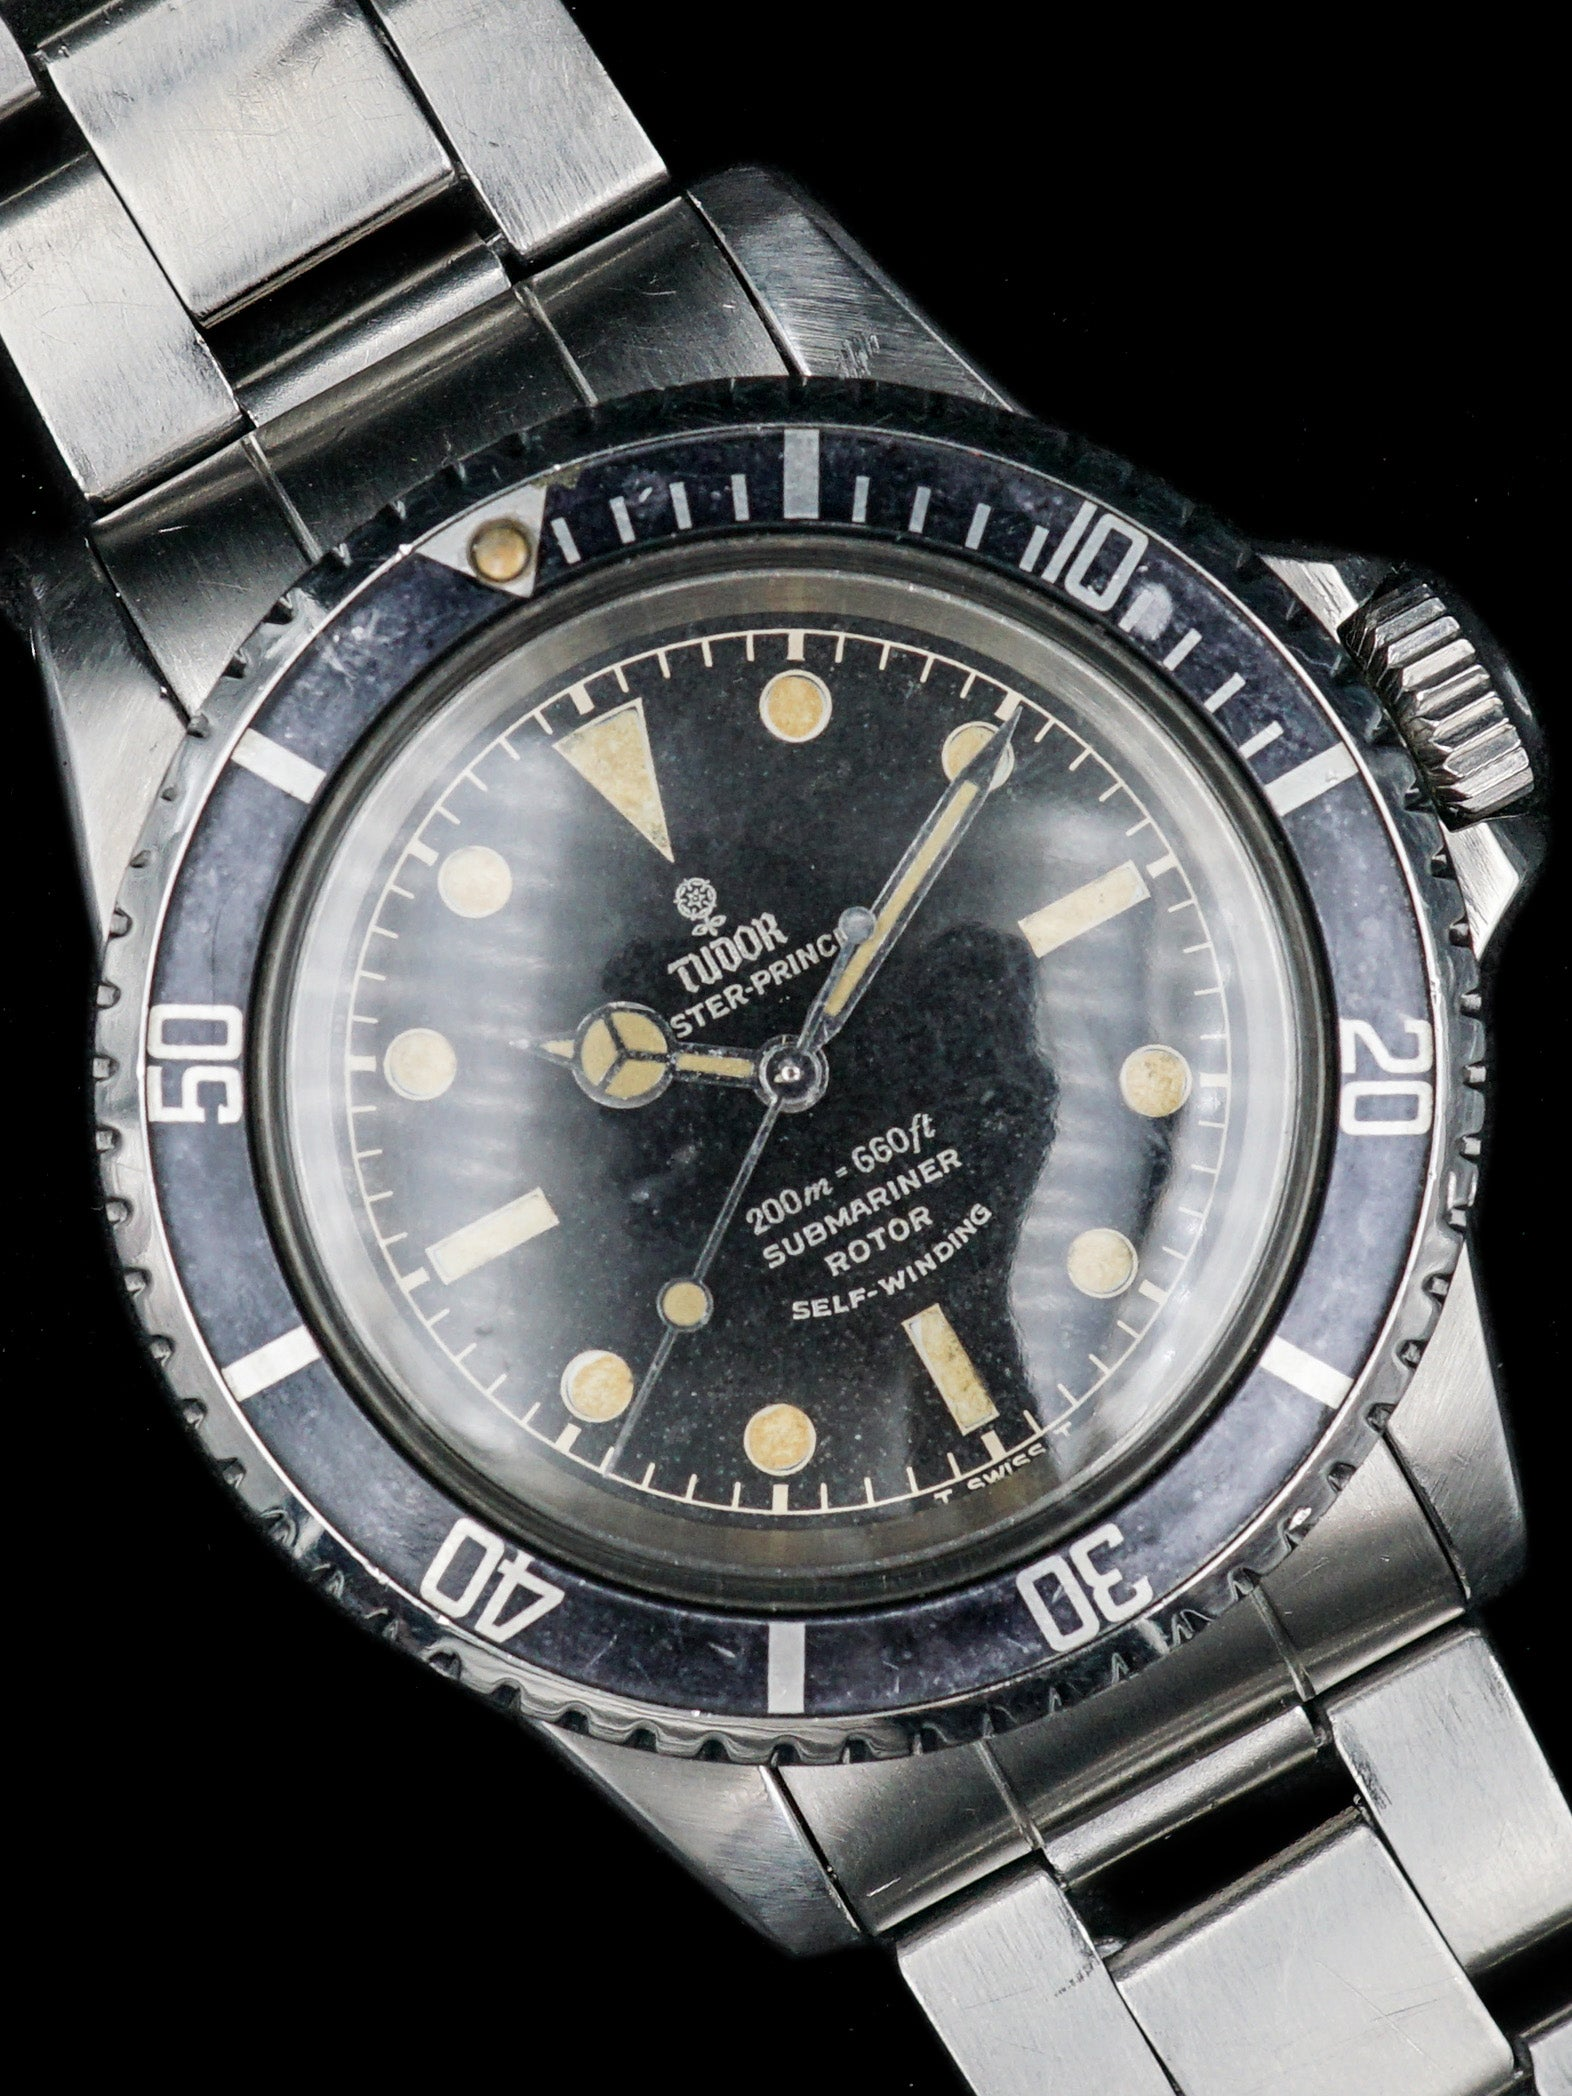 1965 Tudor Submariner (Ref. 7928) Gilt Chapter Ring Dial